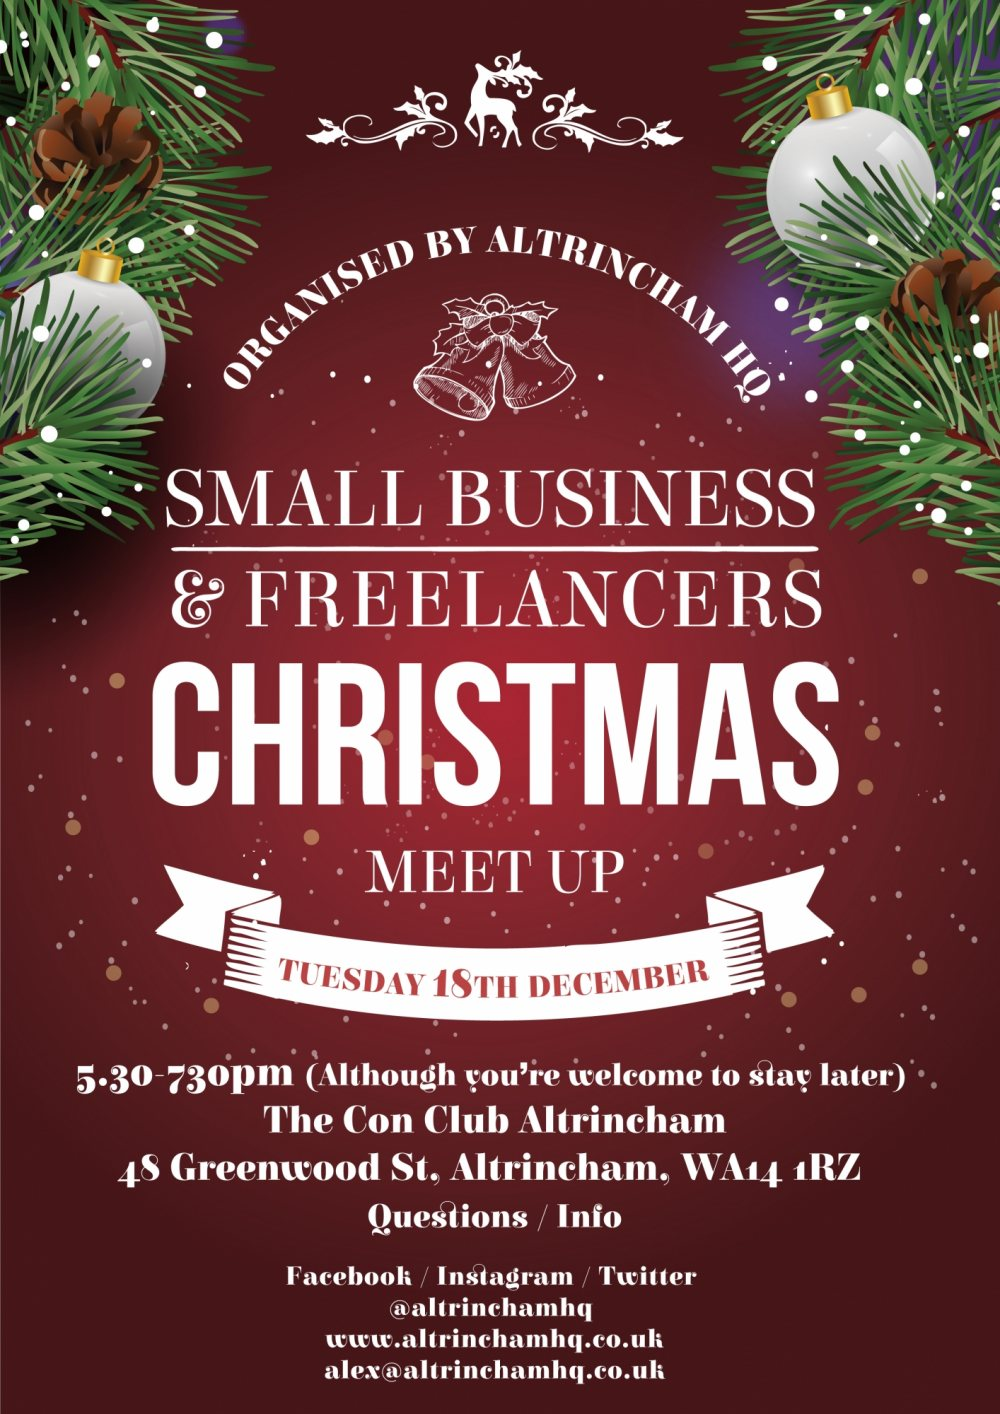 Small Business & Freelancers Christmas Meet-Up